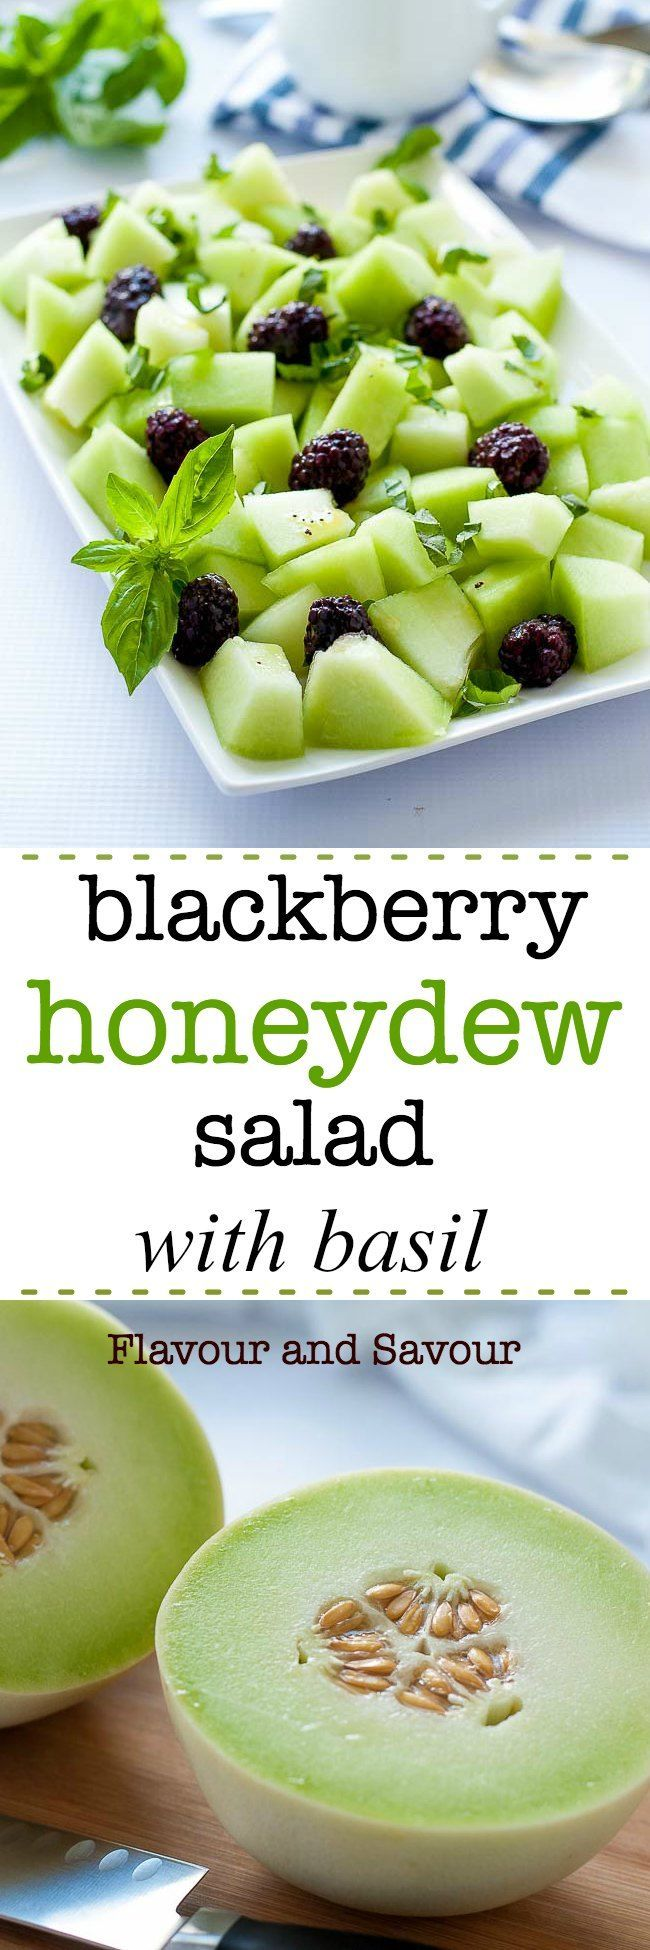 Sweet honeydew, tart blackberries and pungent basil combine to make this fresh Blackberry Honeydew Salad with Basil as appetizing to look at as it is to eat. How to choose a ripe honeydew melon every time!